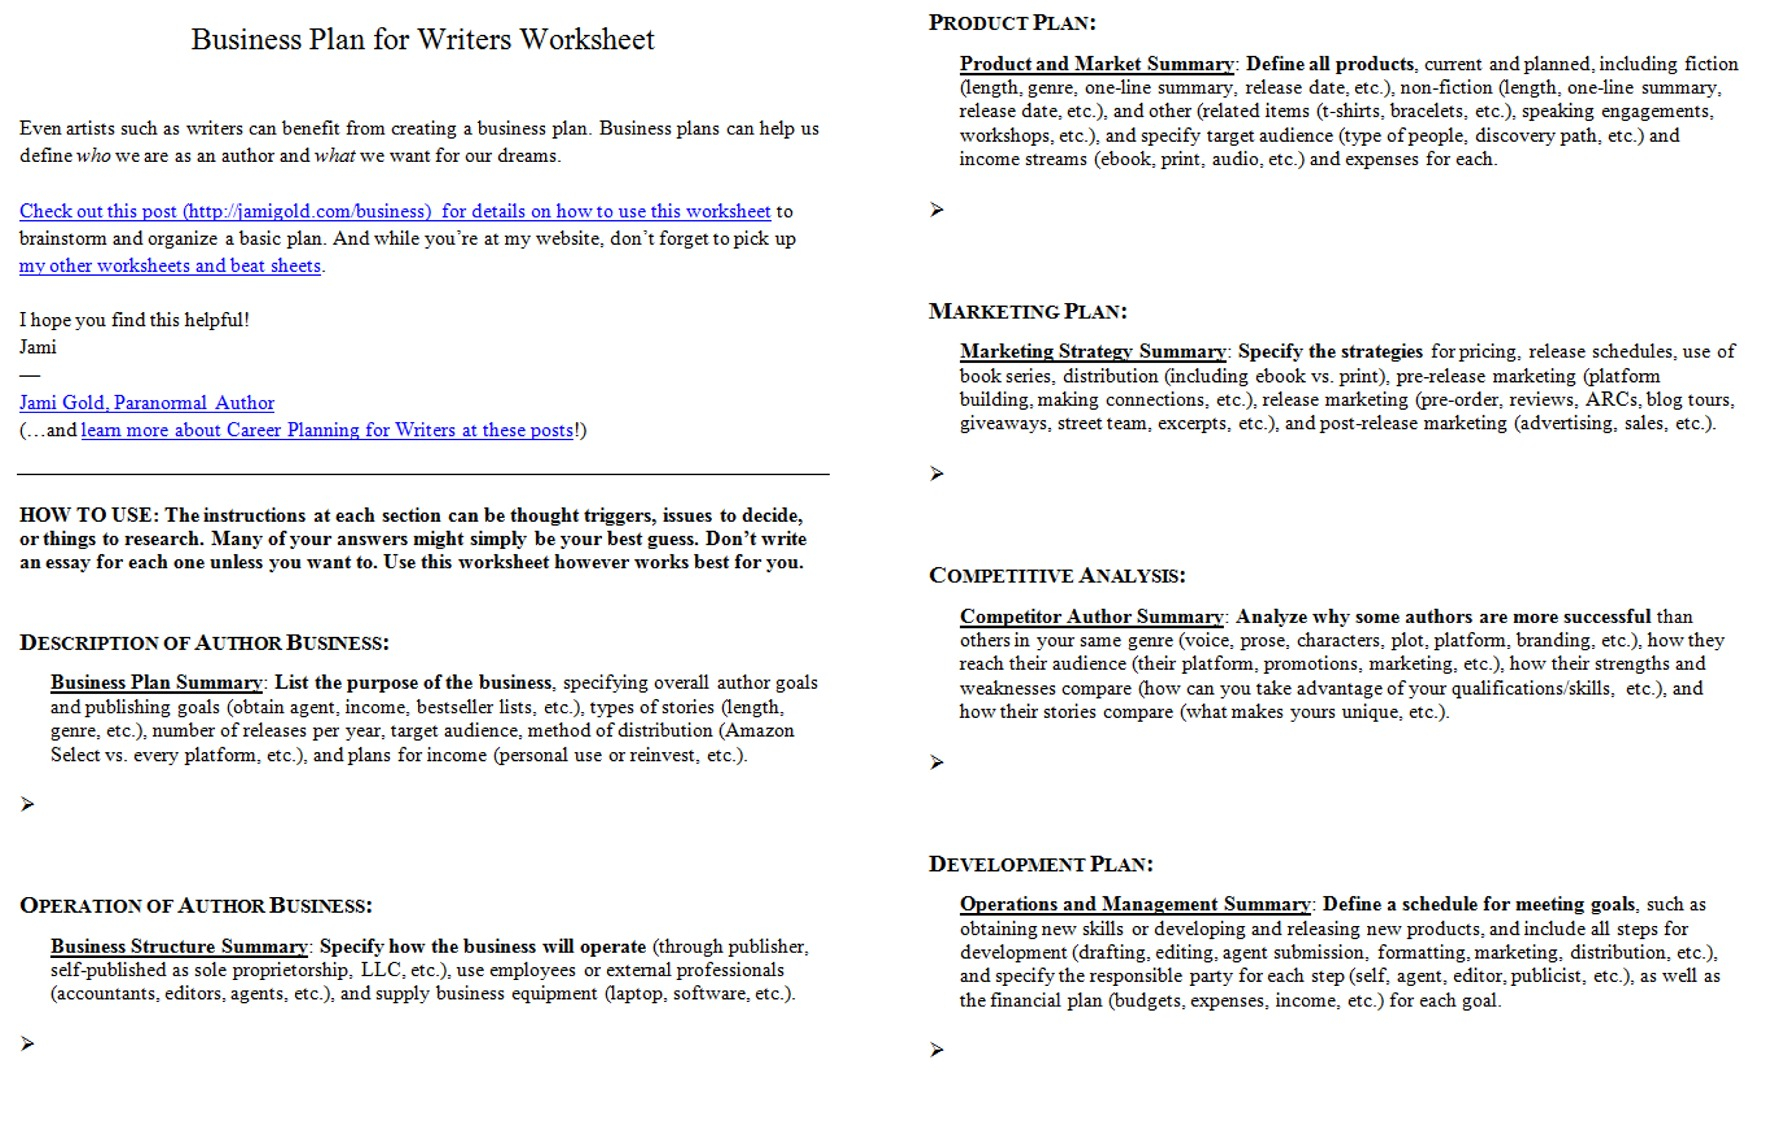 Proatmealus  Prepossessing Worksheets For Writers  Jami Gold Paranormal Author With Hot Screen Shot Of Both Pages Of The Business Plan For Writers Worksheet With Divine Missing Number Worksheets  Also W Worksheet Online In Addition Adding And Subtracting Square Roots Worksheet And Fractions In Simplest Form Worksheets As Well As Solving Word Problems Worksheets Additionally How To Read A Map Worksheet From Jamigoldcom With Proatmealus  Hot Worksheets For Writers  Jami Gold Paranormal Author With Divine Screen Shot Of Both Pages Of The Business Plan For Writers Worksheet And Prepossessing Missing Number Worksheets  Also W Worksheet Online In Addition Adding And Subtracting Square Roots Worksheet From Jamigoldcom